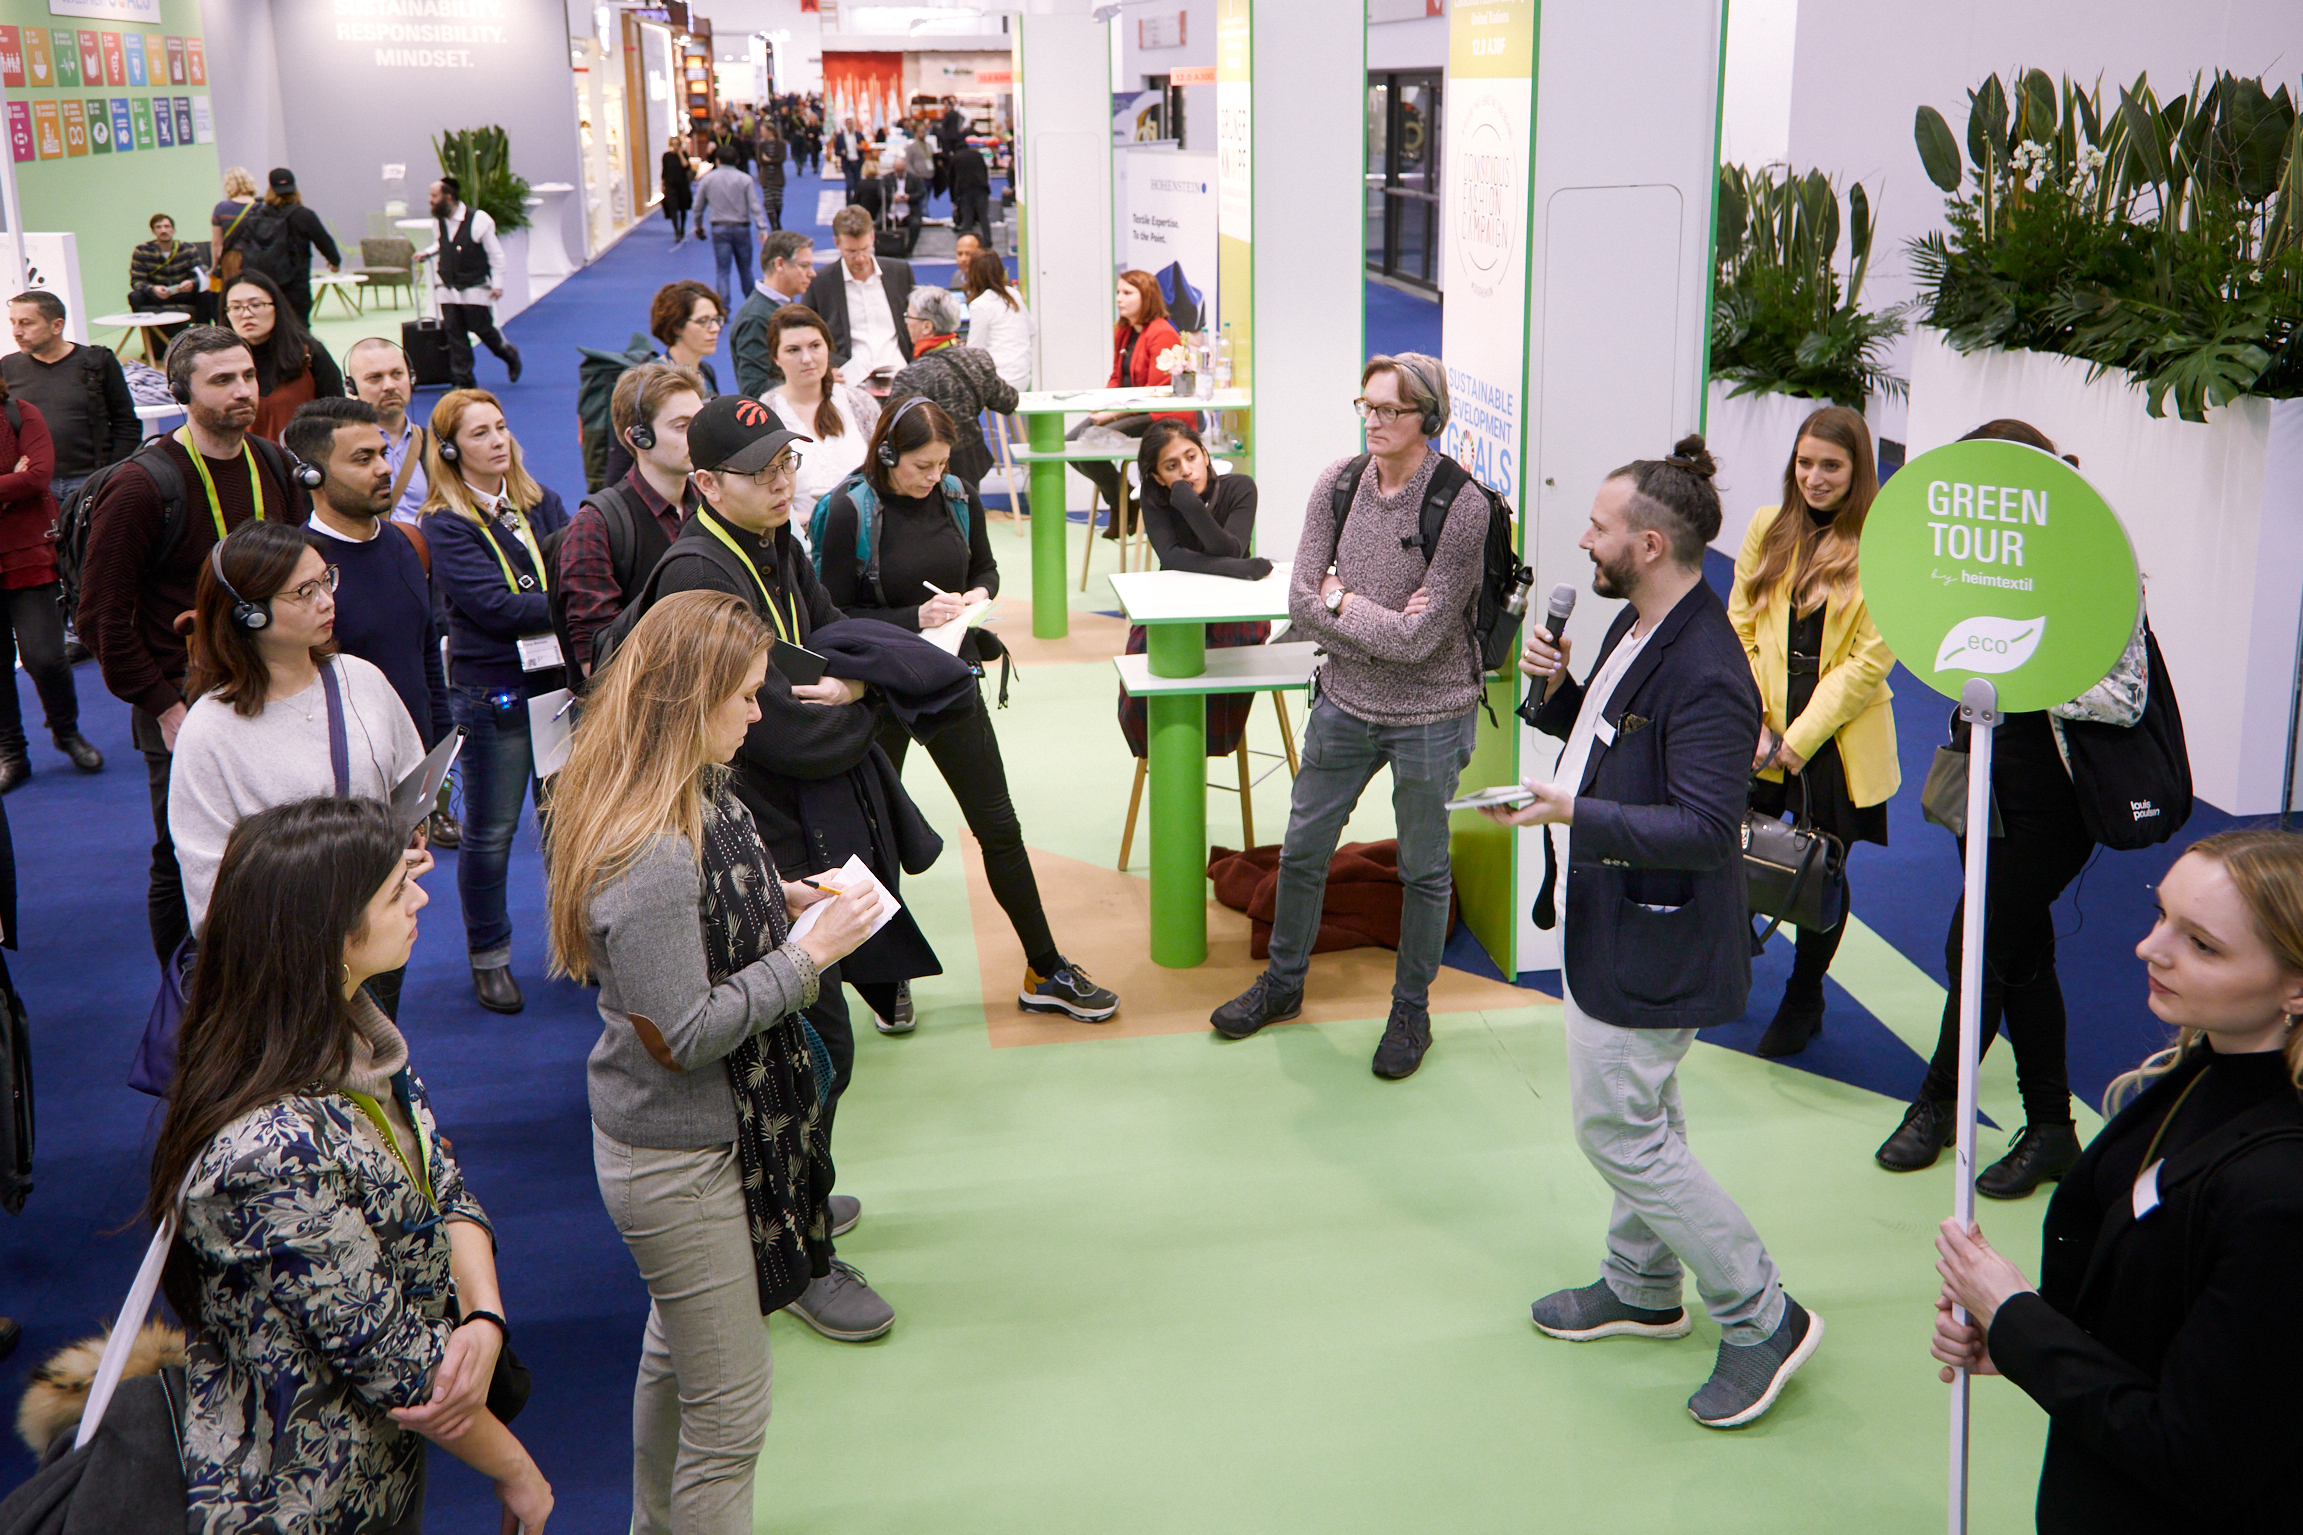 Green Tour at Heimtextil highlighting sustainable producers for home textiles / Photo: Messe Frankfurt Exhibition / Jean-Luc Valentin